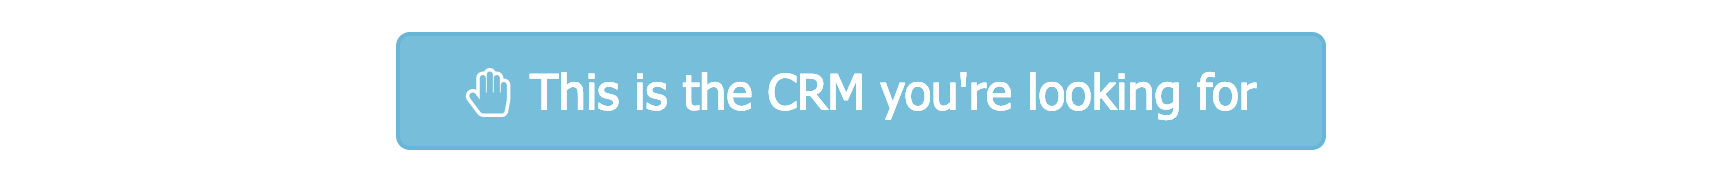 This-is-the-CRM.png